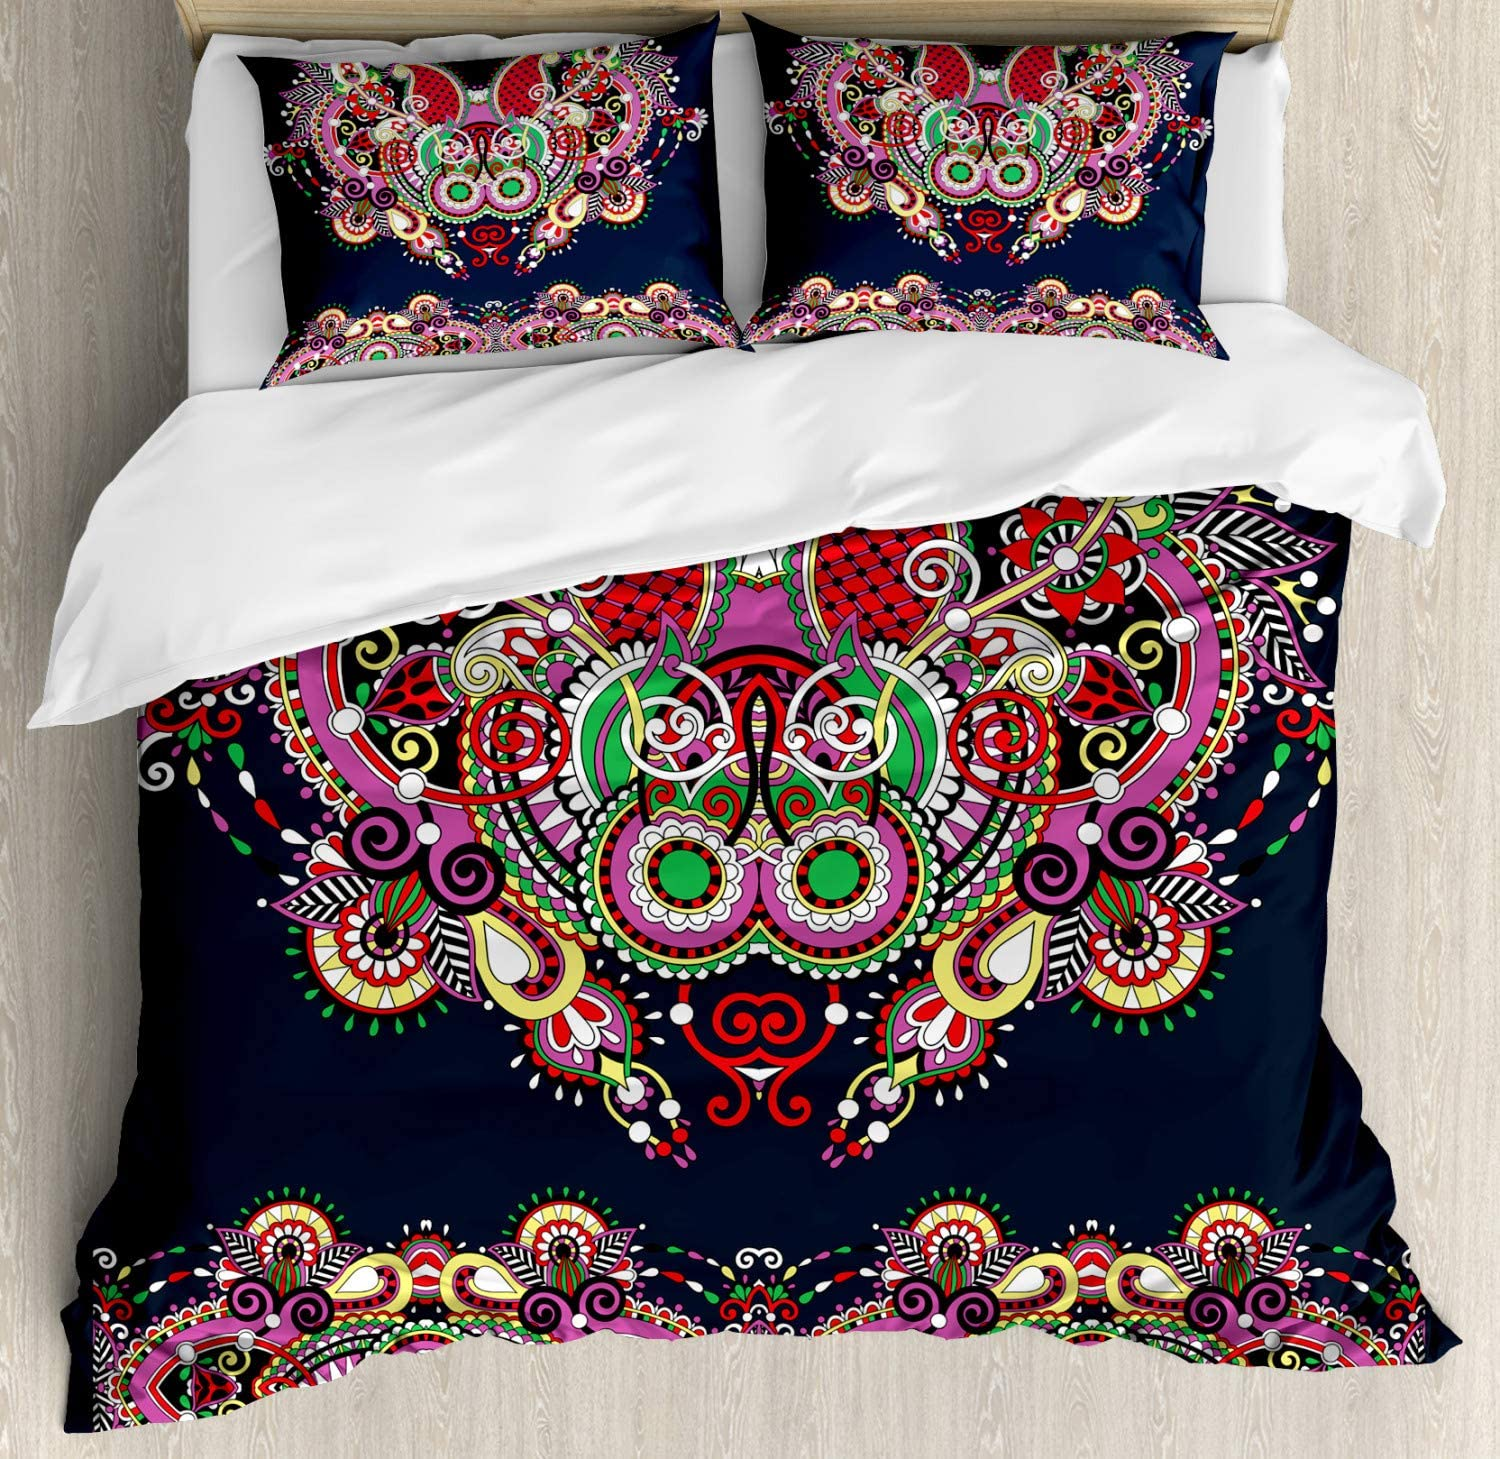 Ambesonne Ethnic Duvet Cover Set, Ukrainian Fashioned Ornamental Paisley Design with Unique Features Motif, Decorative 3 Piece Bedding Set with 2 Pillow Shams, King Size, Grey Violet